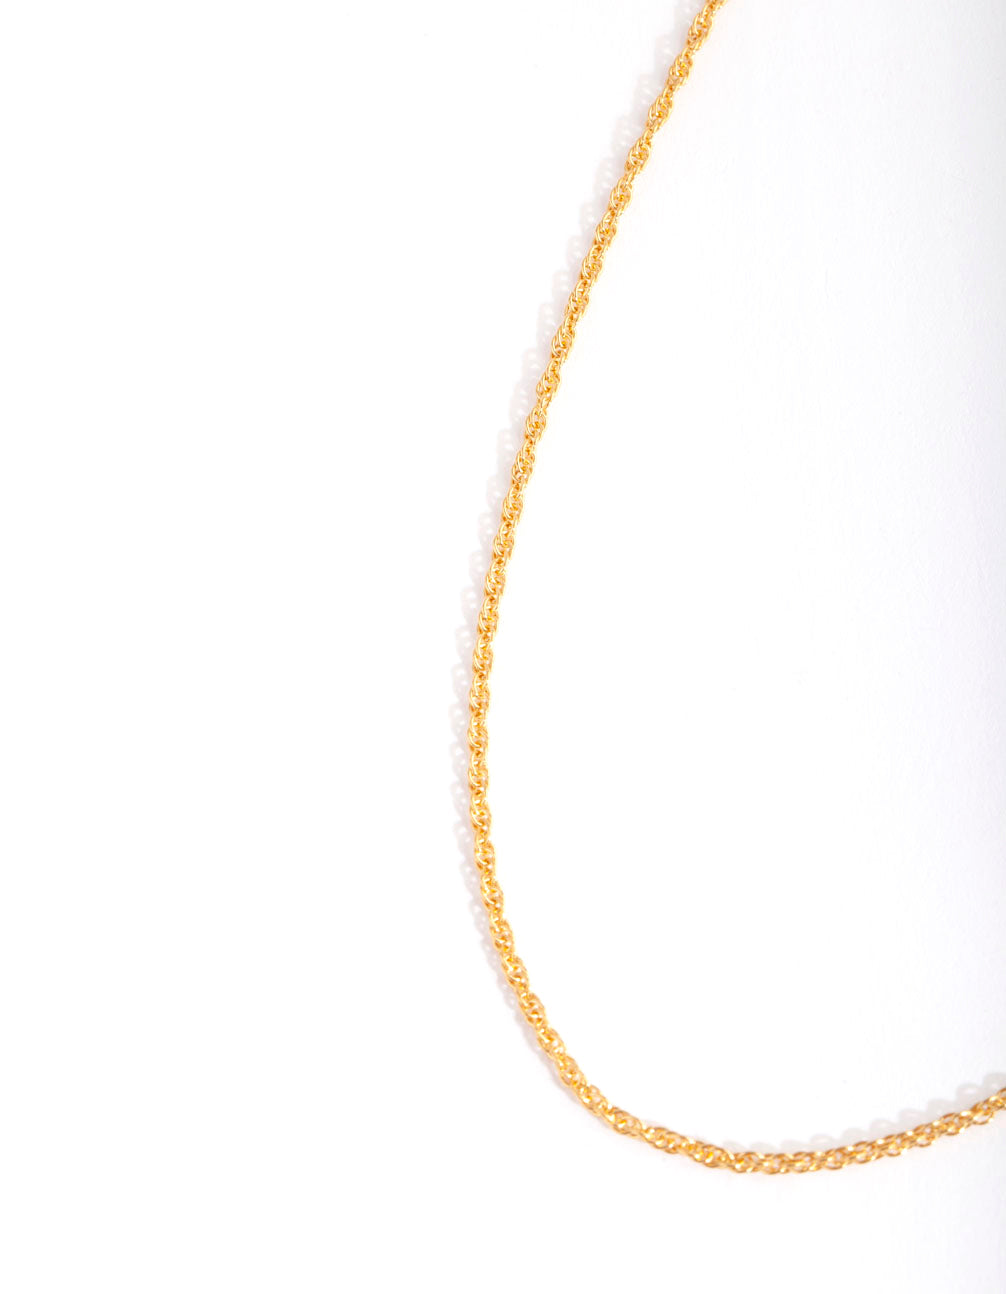 Gold Plated Sterling Silver Twist Chain Necklace